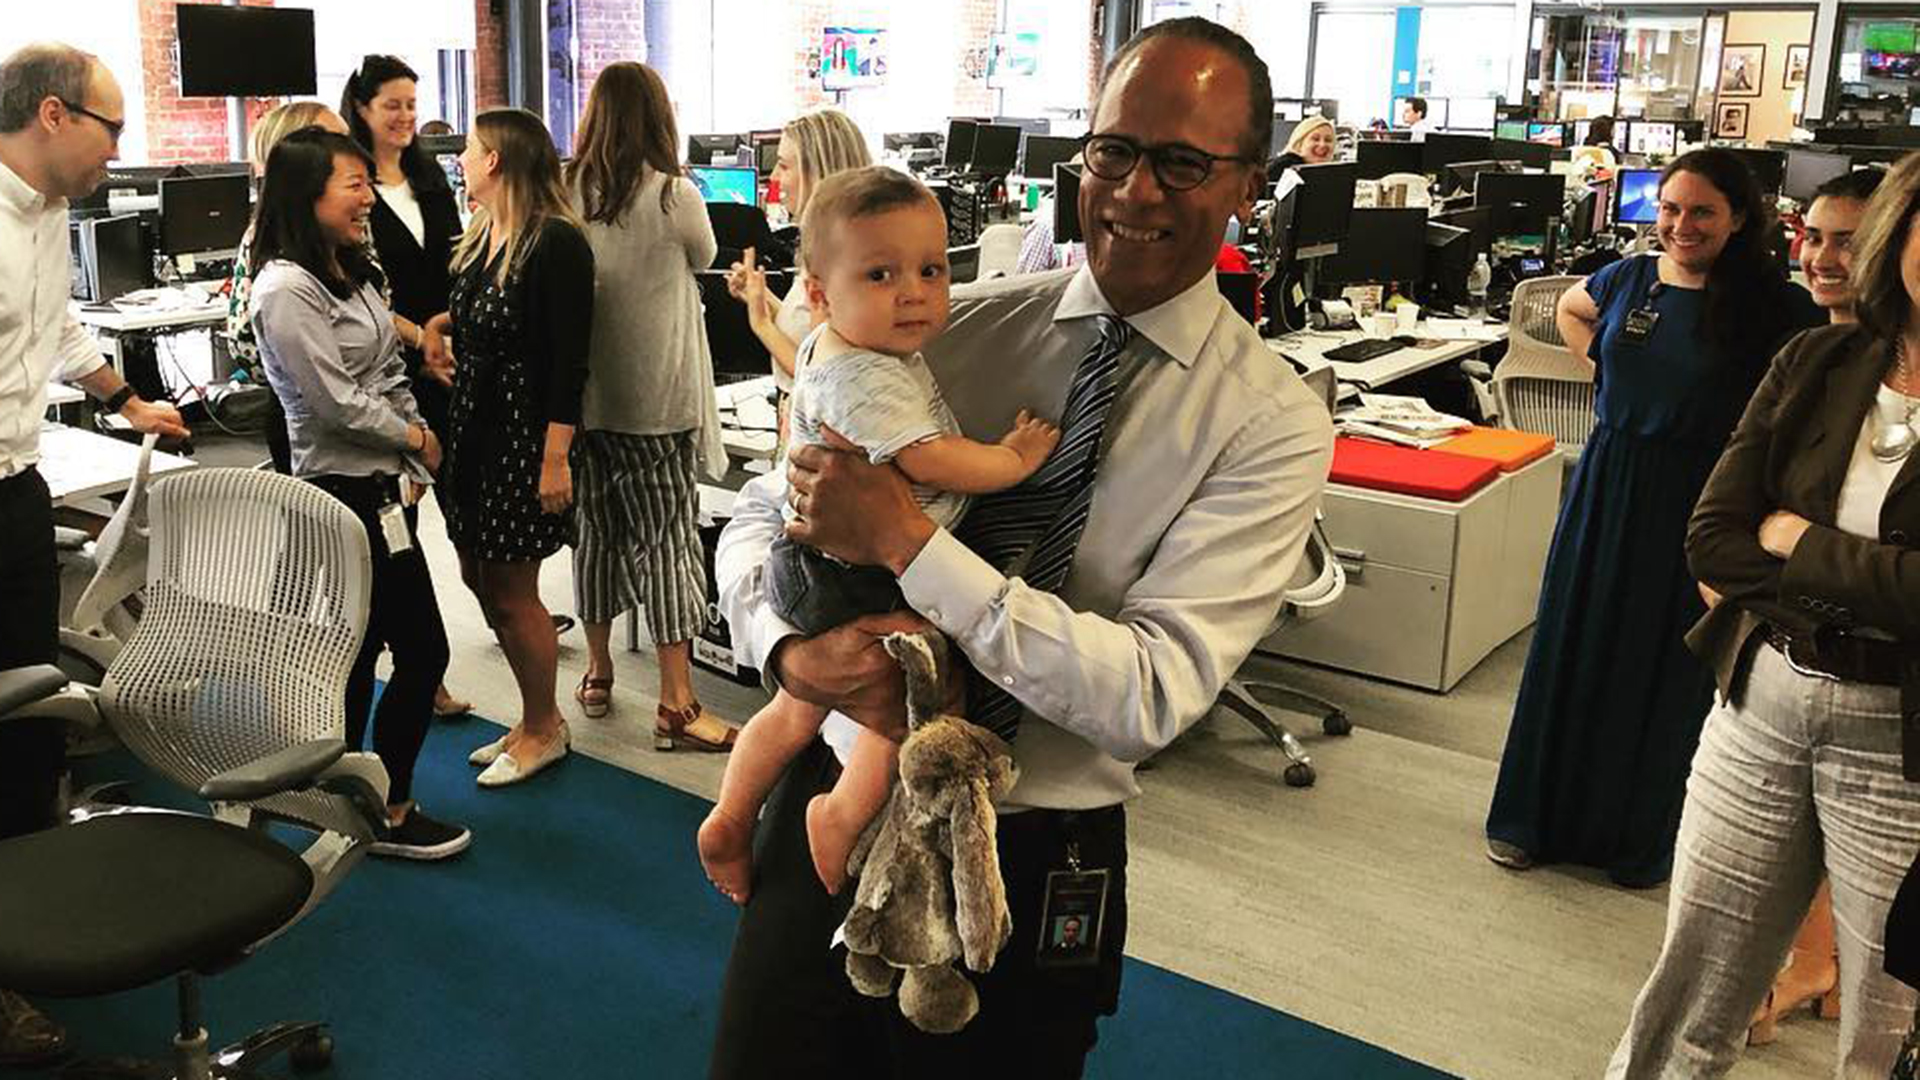 Lester Holt gets surprise visit from grandson Henry at work